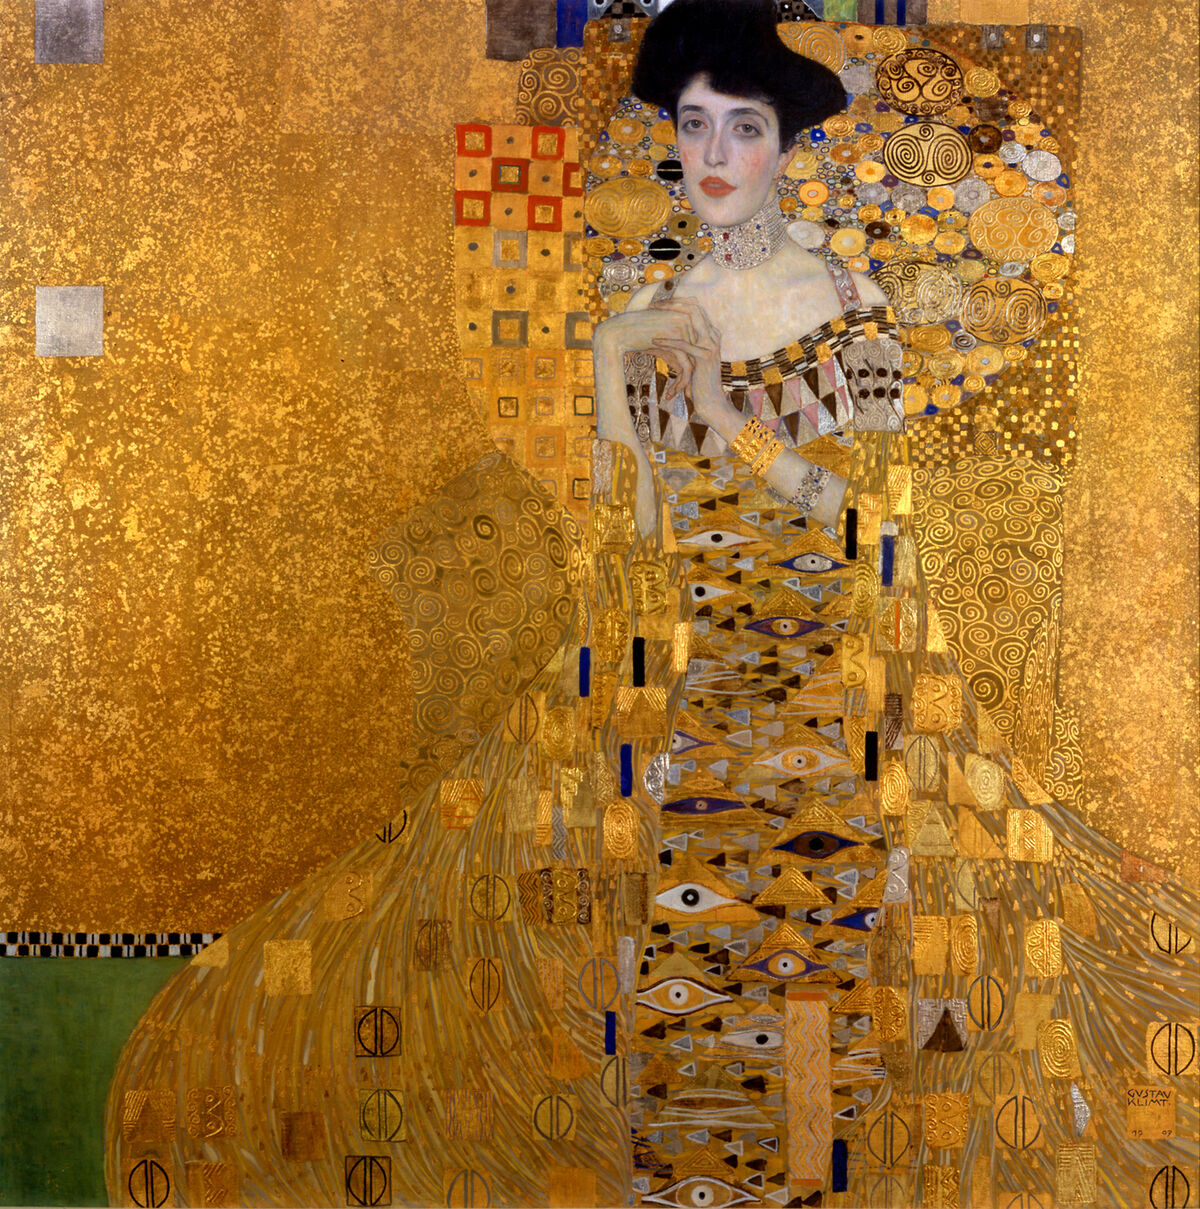 Gustav Klimt, Portrait of Adele Block-Bauer I, 1907. Image via Wikimedia Commons.